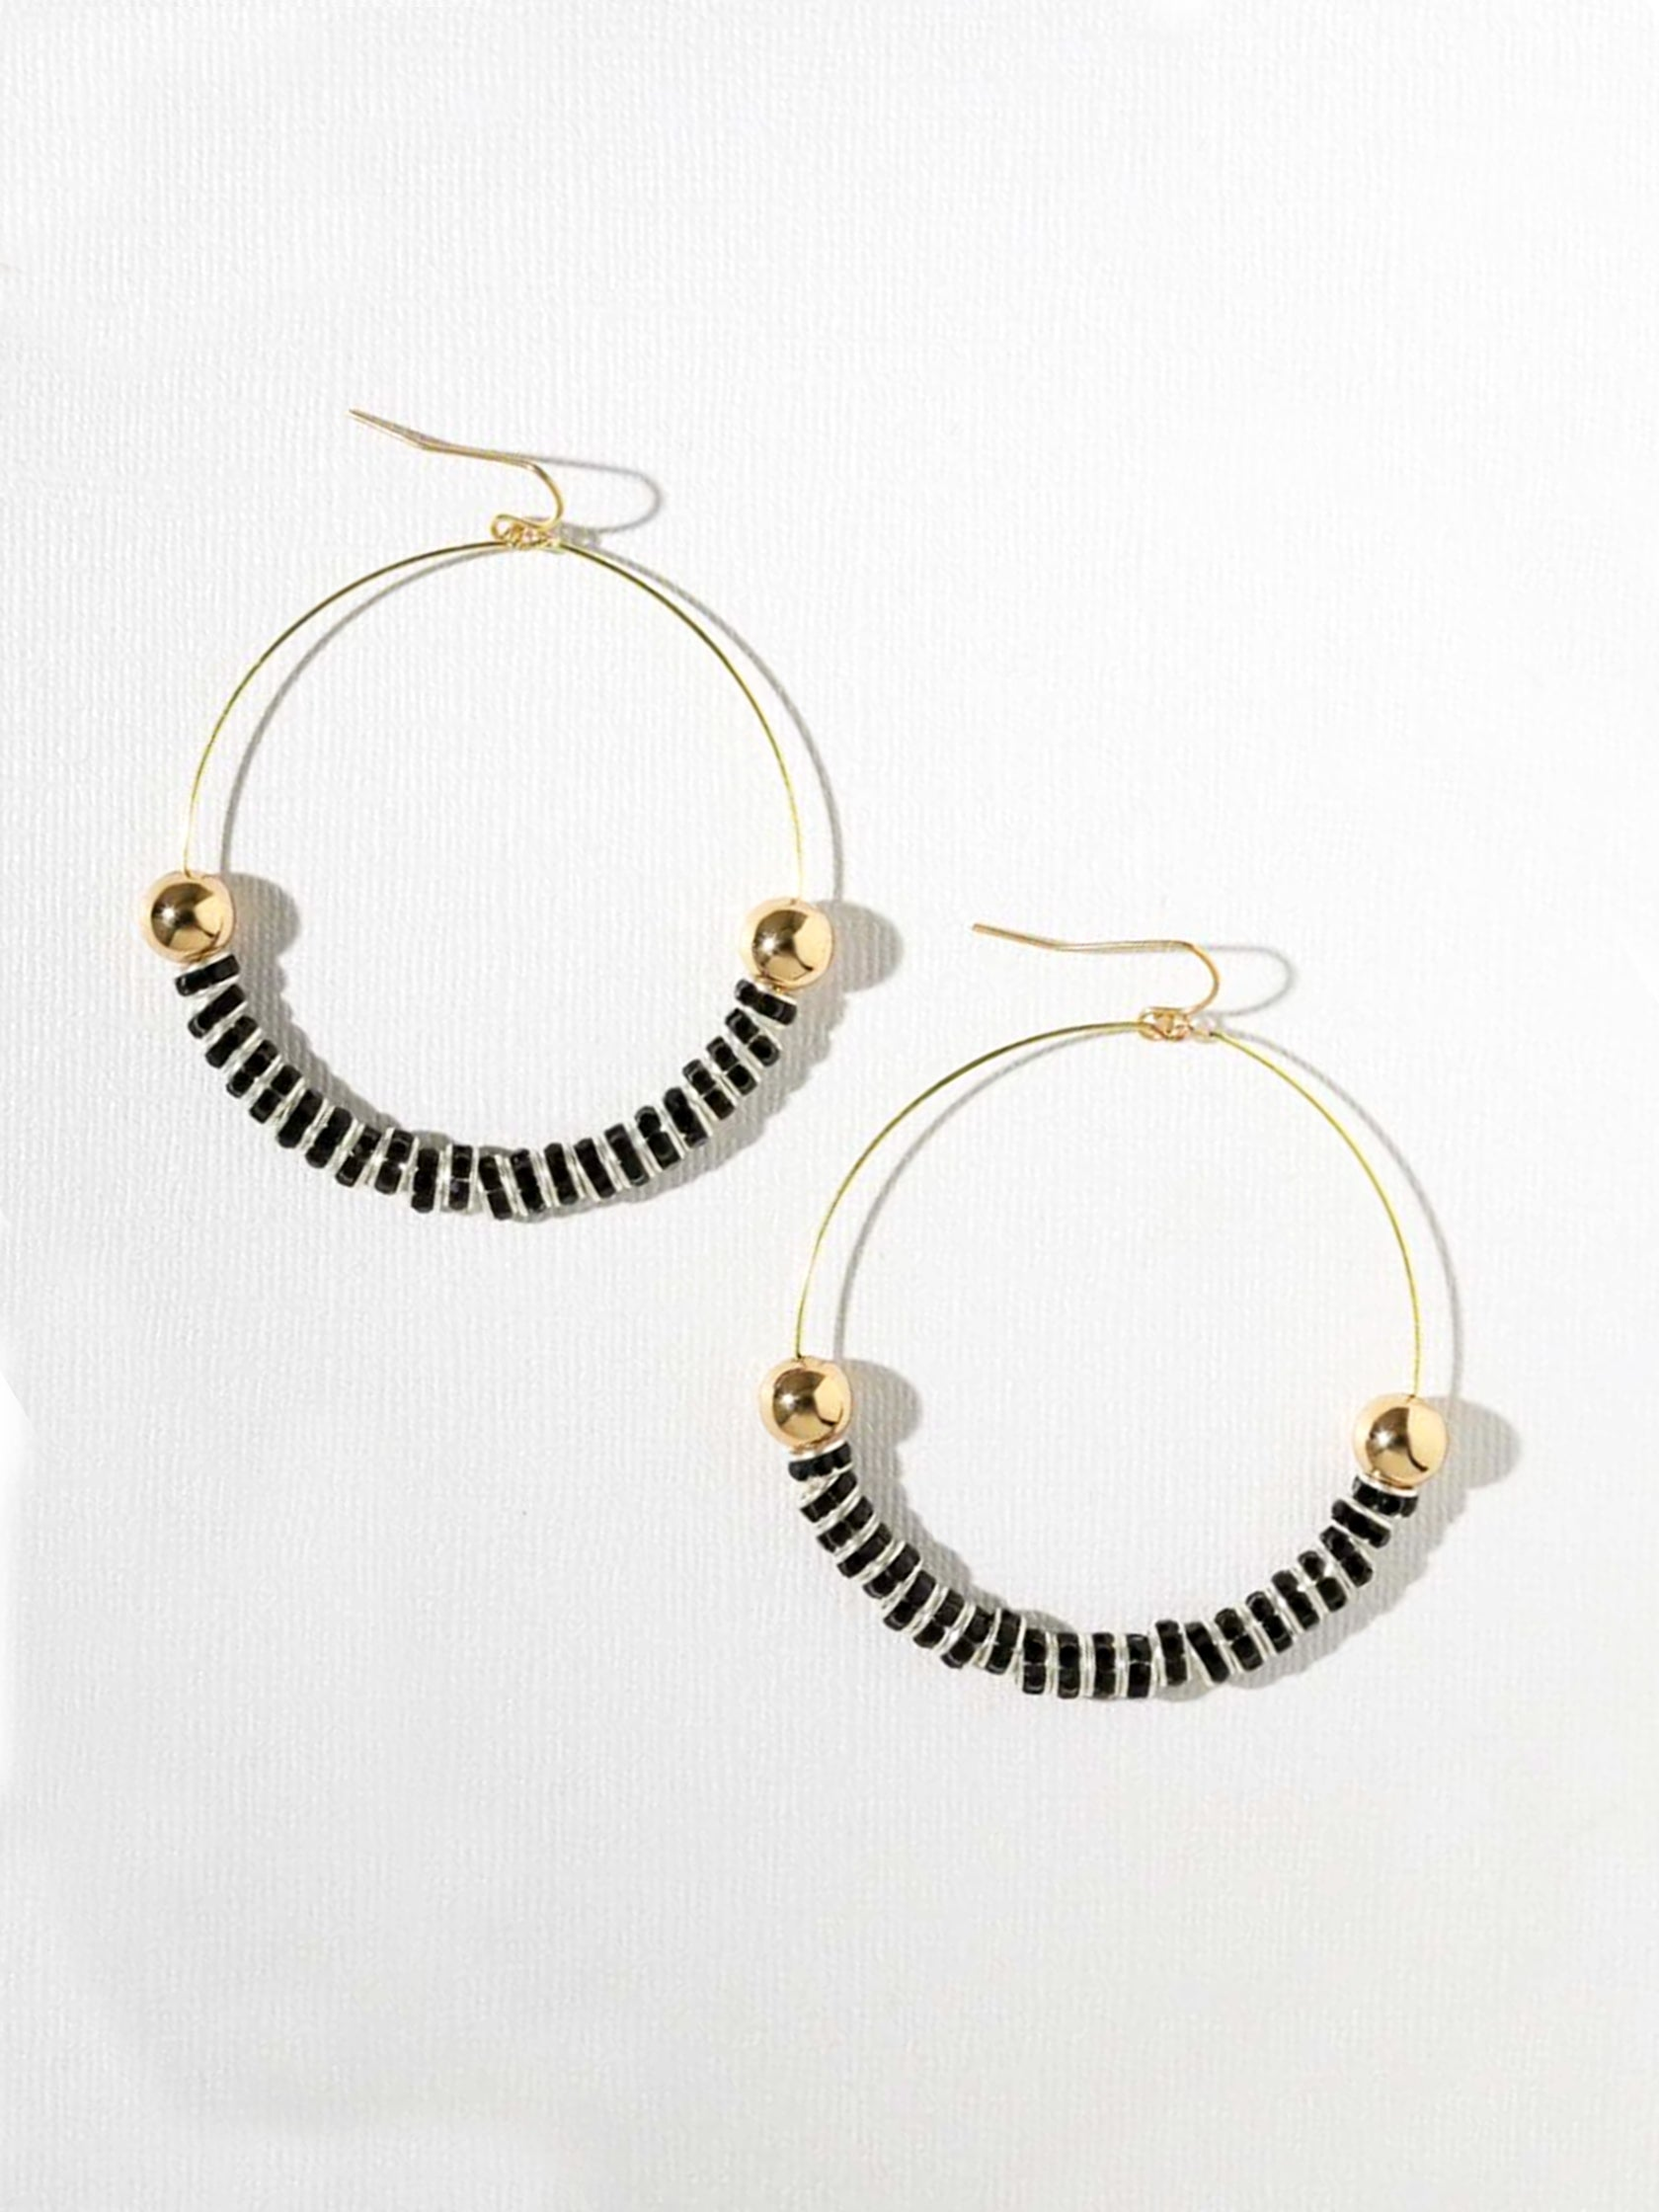 Women outfit in a earrings rental from Vanessa Mooney called Maddie Hoops